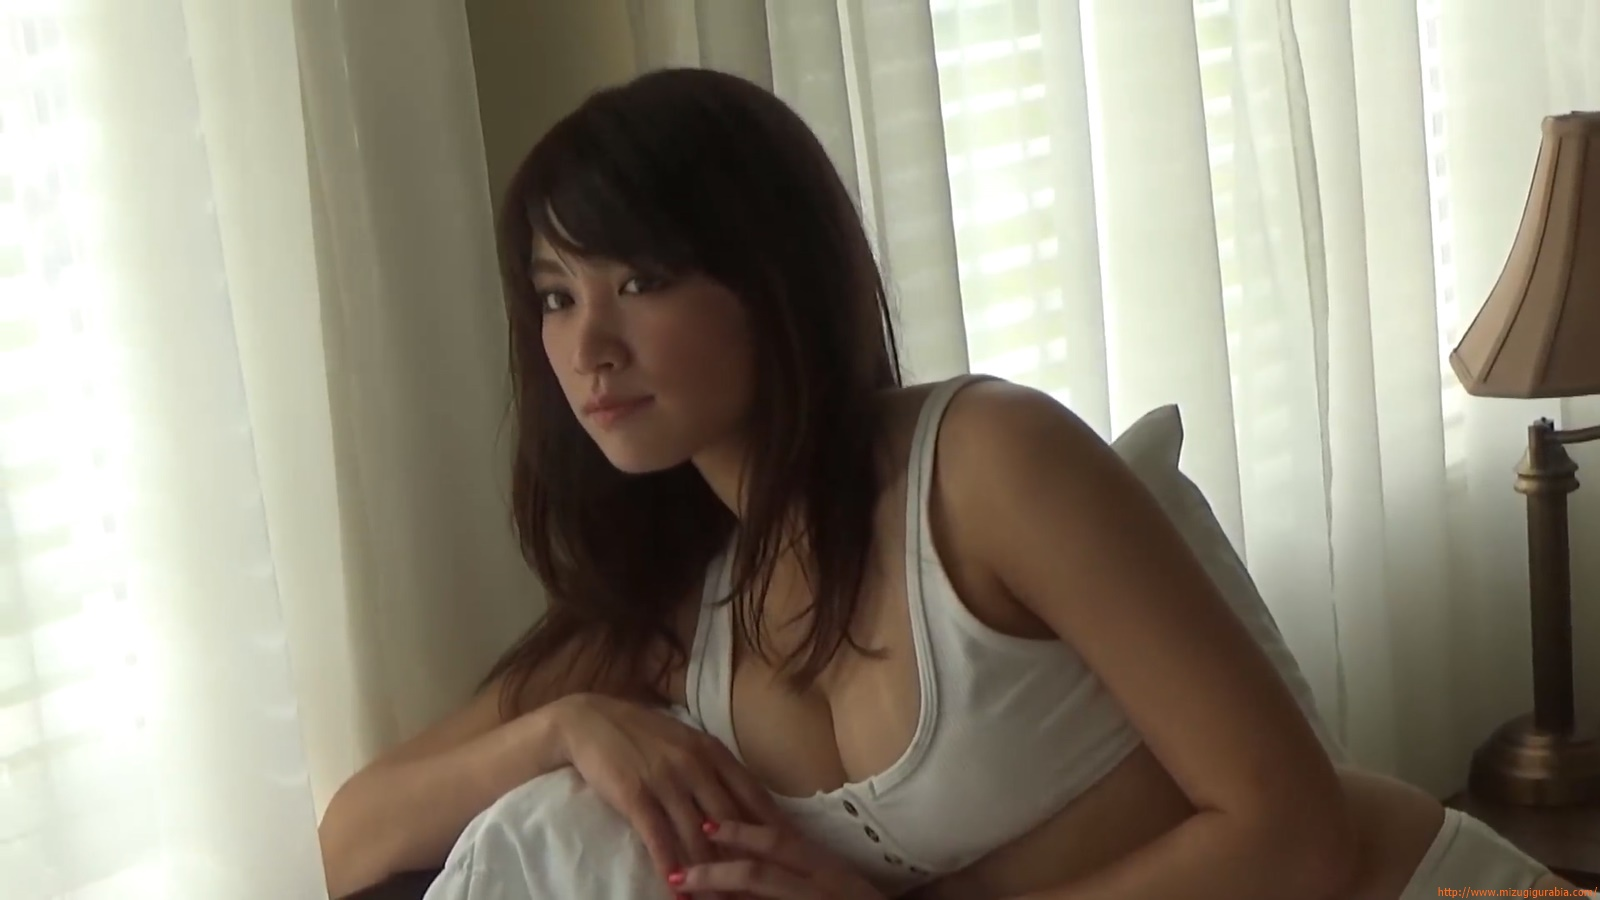 Shes a sunny bodice who continues to lead the way in gravure005